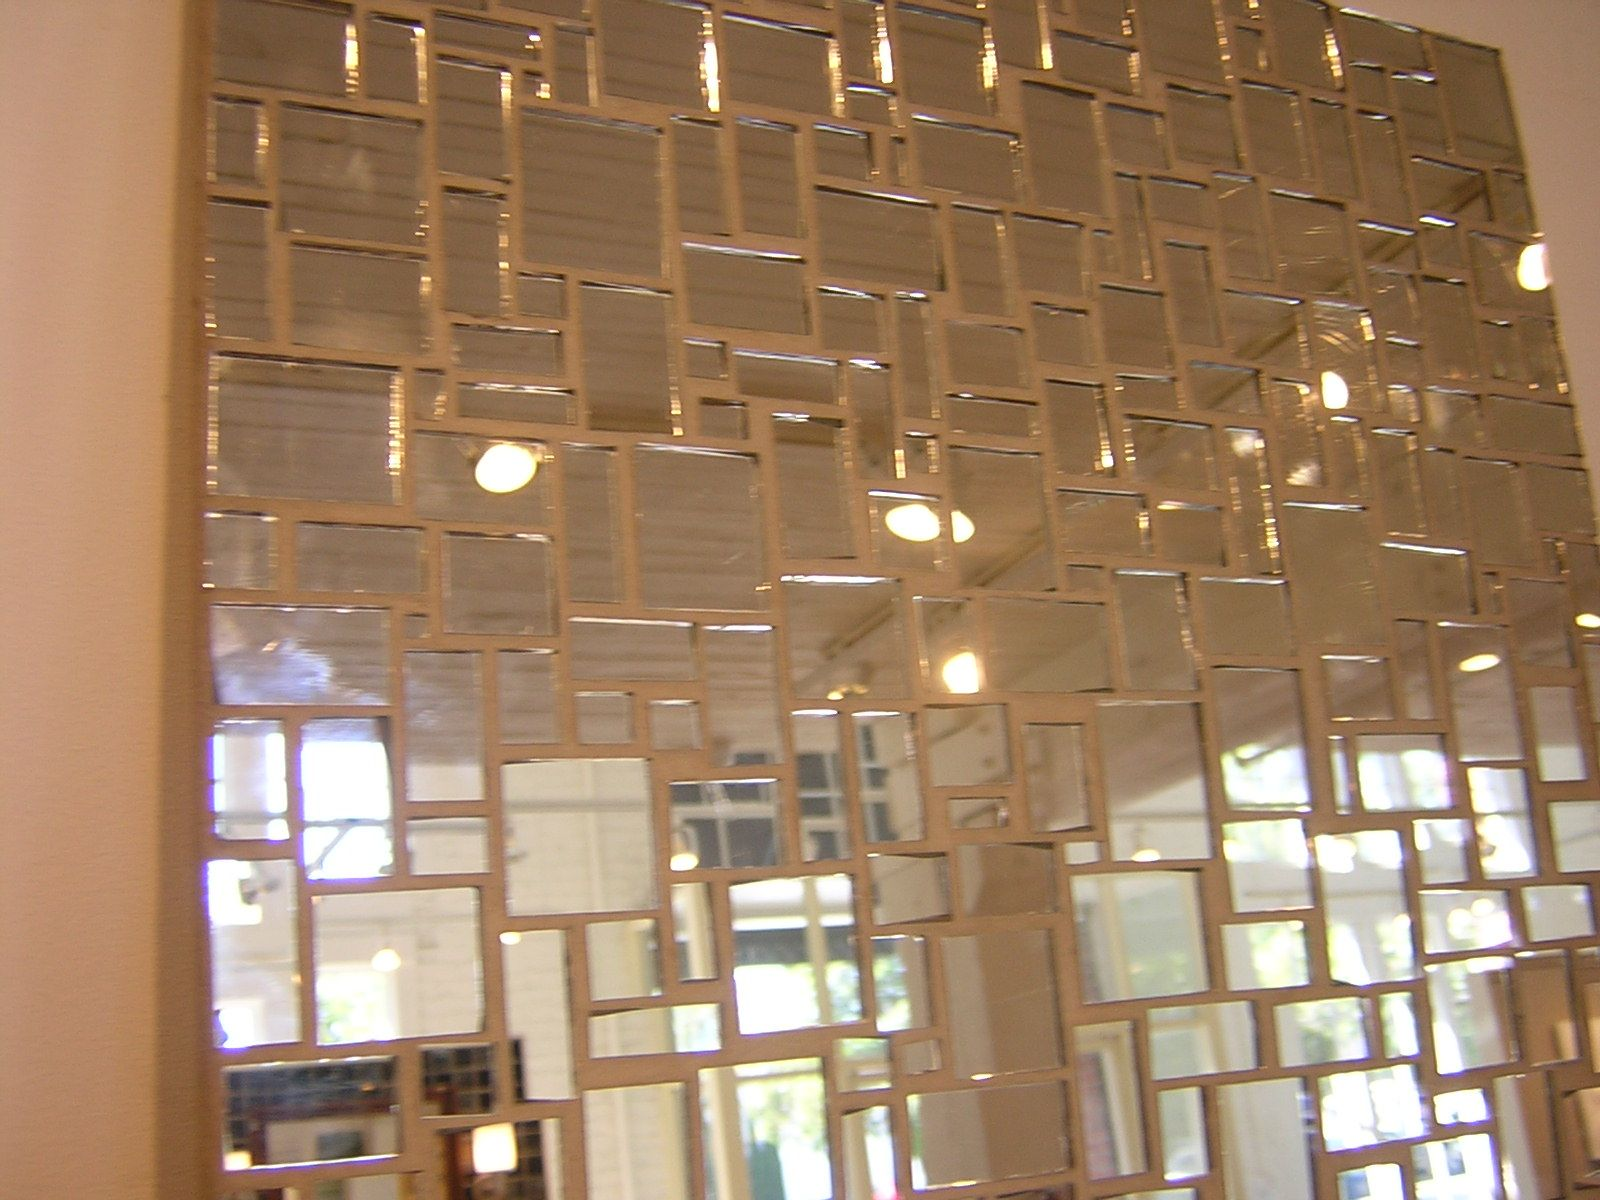 Pin By Carol Becker On Quot Venus Quot Imagery Mirror Wall Tiles